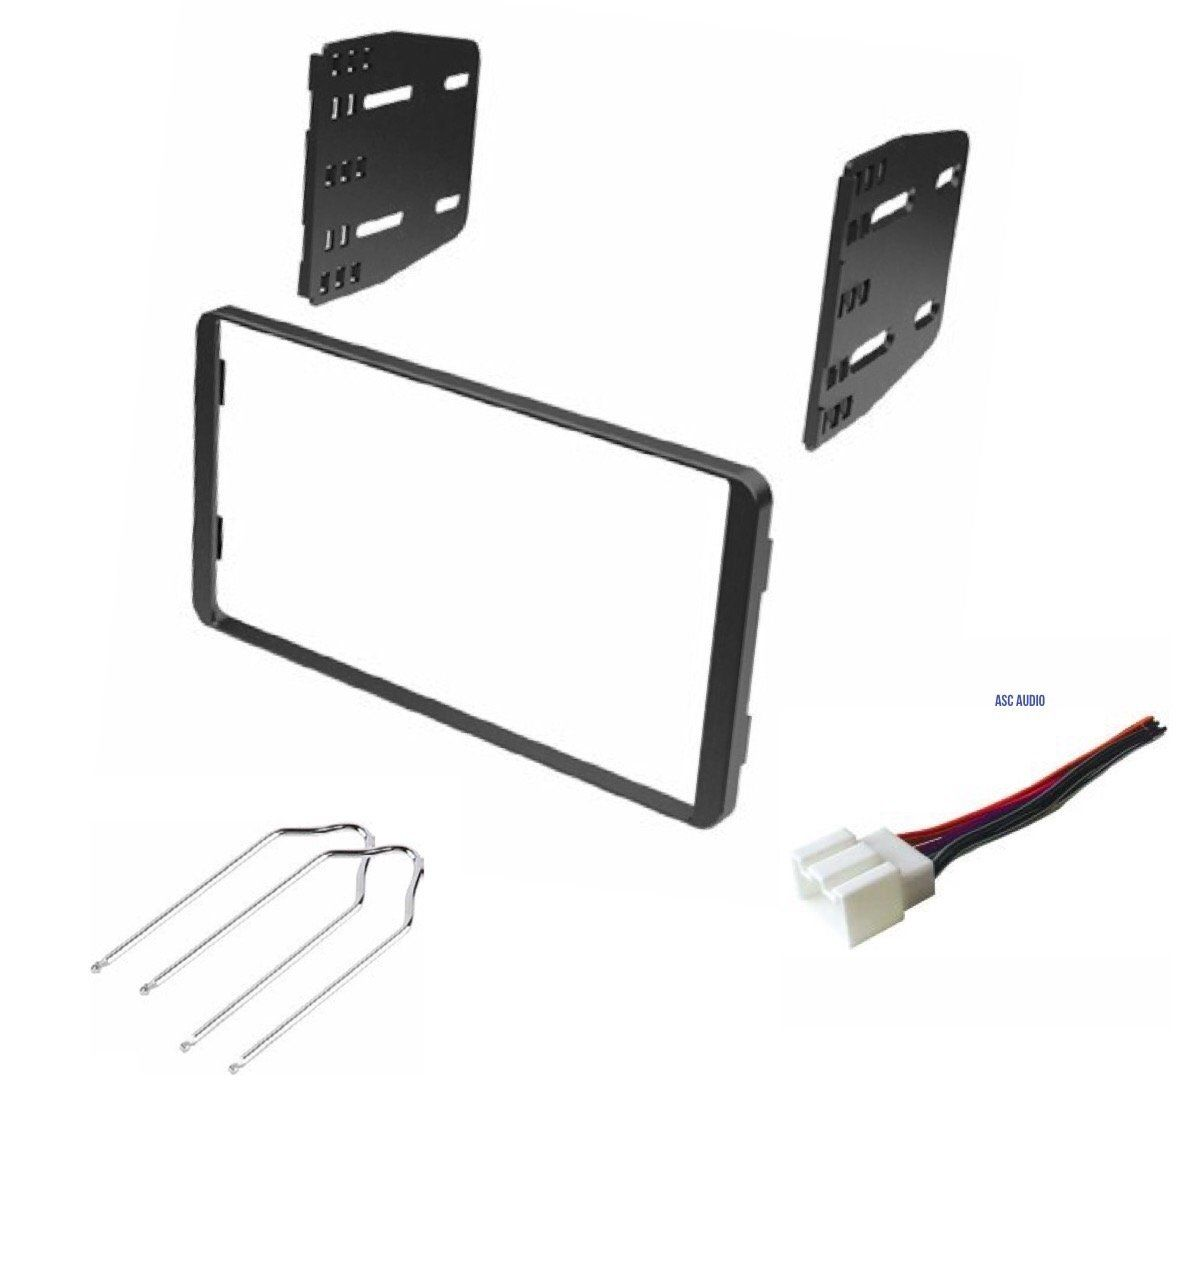 Car Stereo Dash Kit, Wire Harness, and Radio Tool for